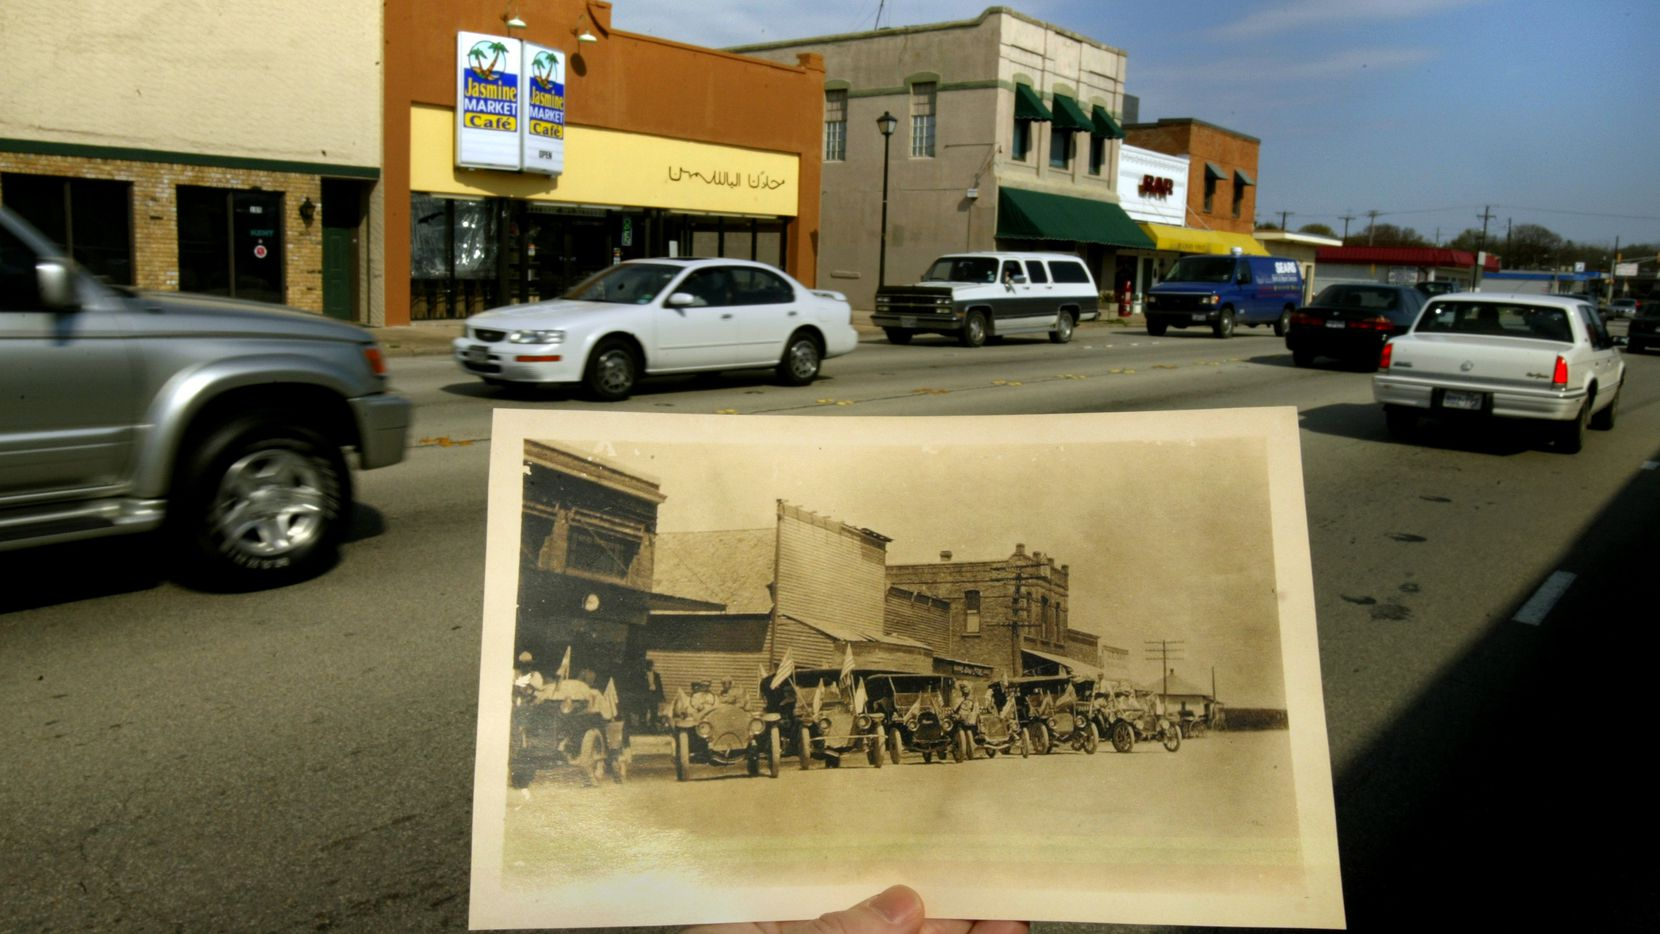 A copy of an early 1900s photograph from the Richardson Public Library showing the north side of Main Street in downtown Richardson, is contrasted with traffic on the street on March 11, 2004.